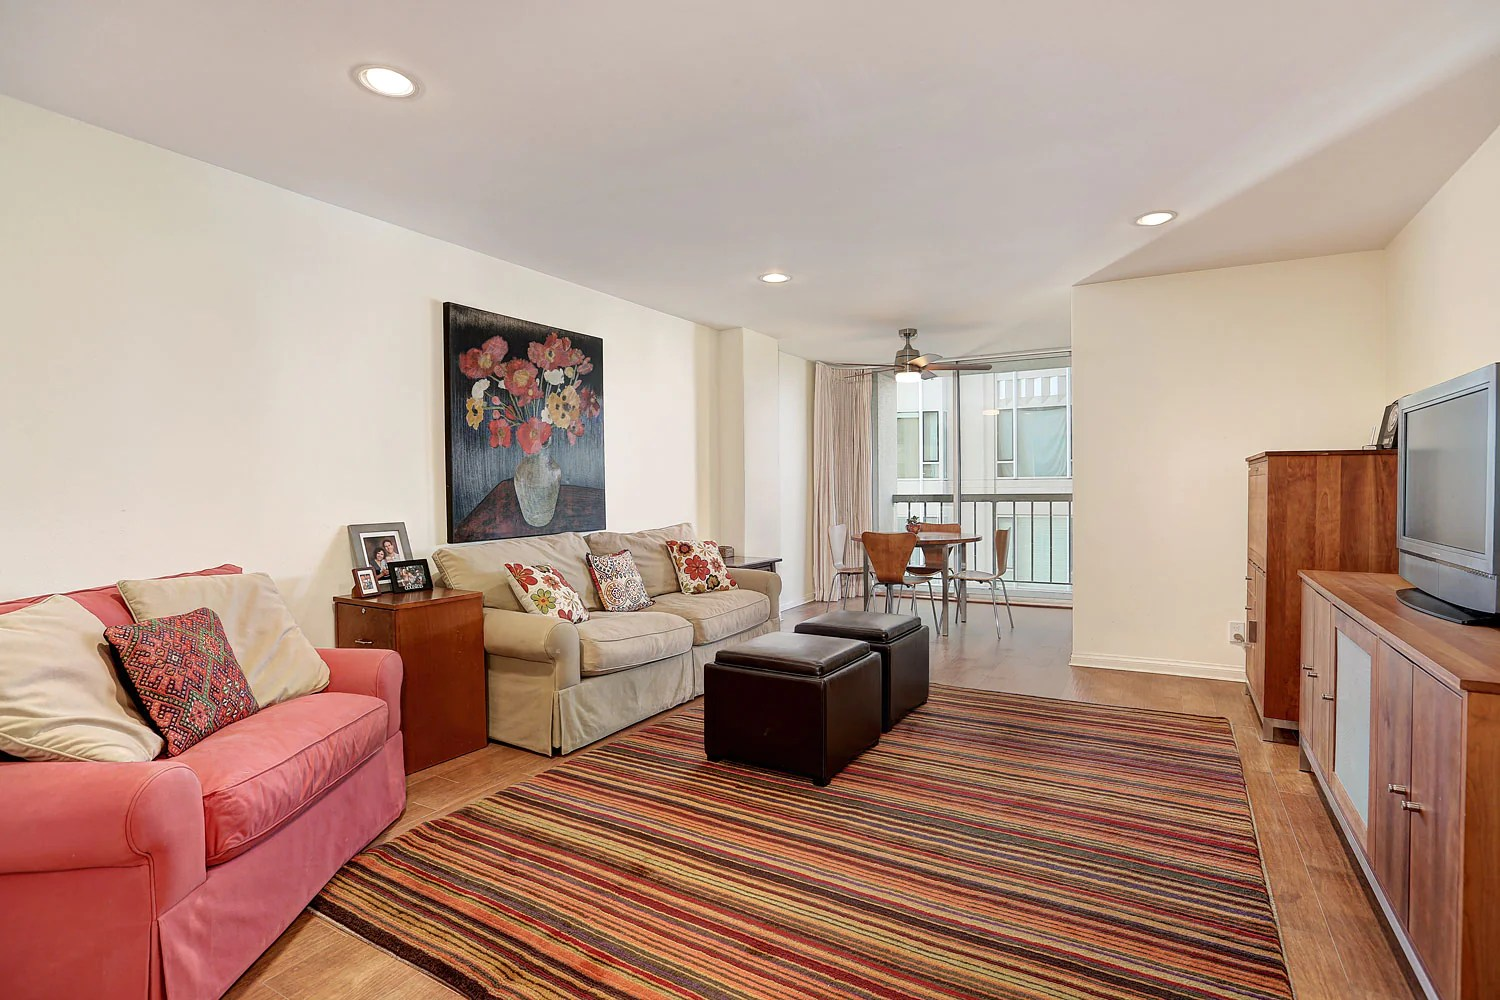 Thirdly, This Is The Perfect Condo To Purchase If Youu0027re Looking For  Housing Close To UCLA. First Of All,where Can You Find A Condominium With  So Much ...